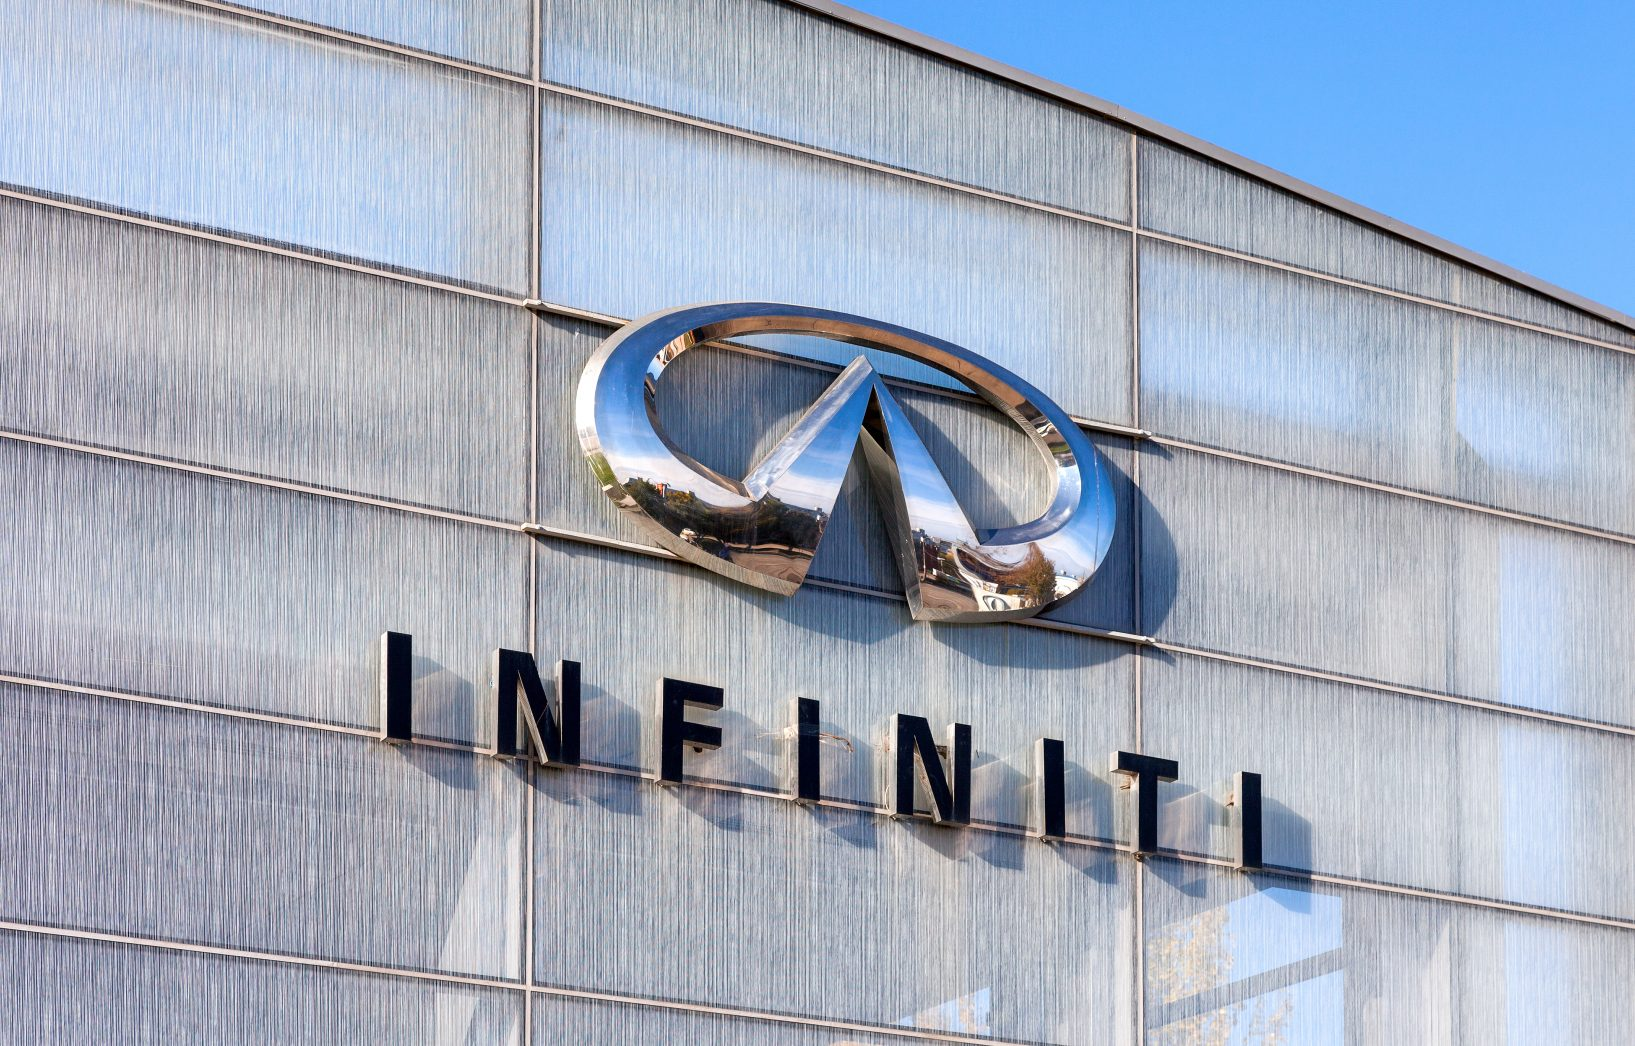 Nissan's Premium Car Brand Infiniti Looks To Triple Sales In China